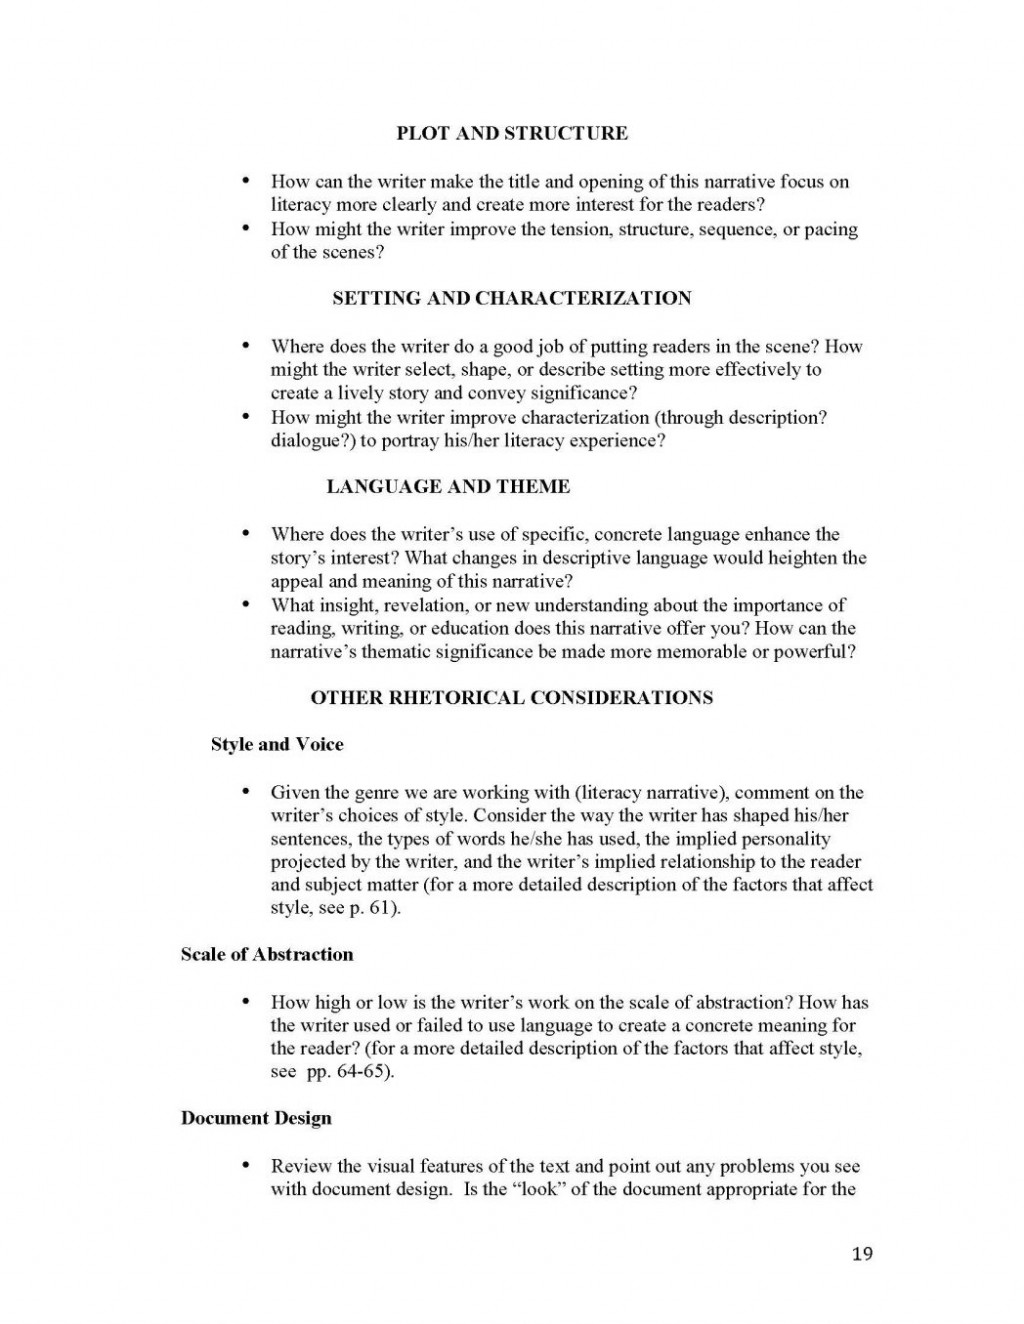 007 Human Trafficking Essay Example Narrative Guidelines Cover Letter How To Write Inla Format Unit 1 Literacy Instructor Copy Pa High School College Apa Dialogue Spm For Rare Outline Term Paper Topics Questions Large